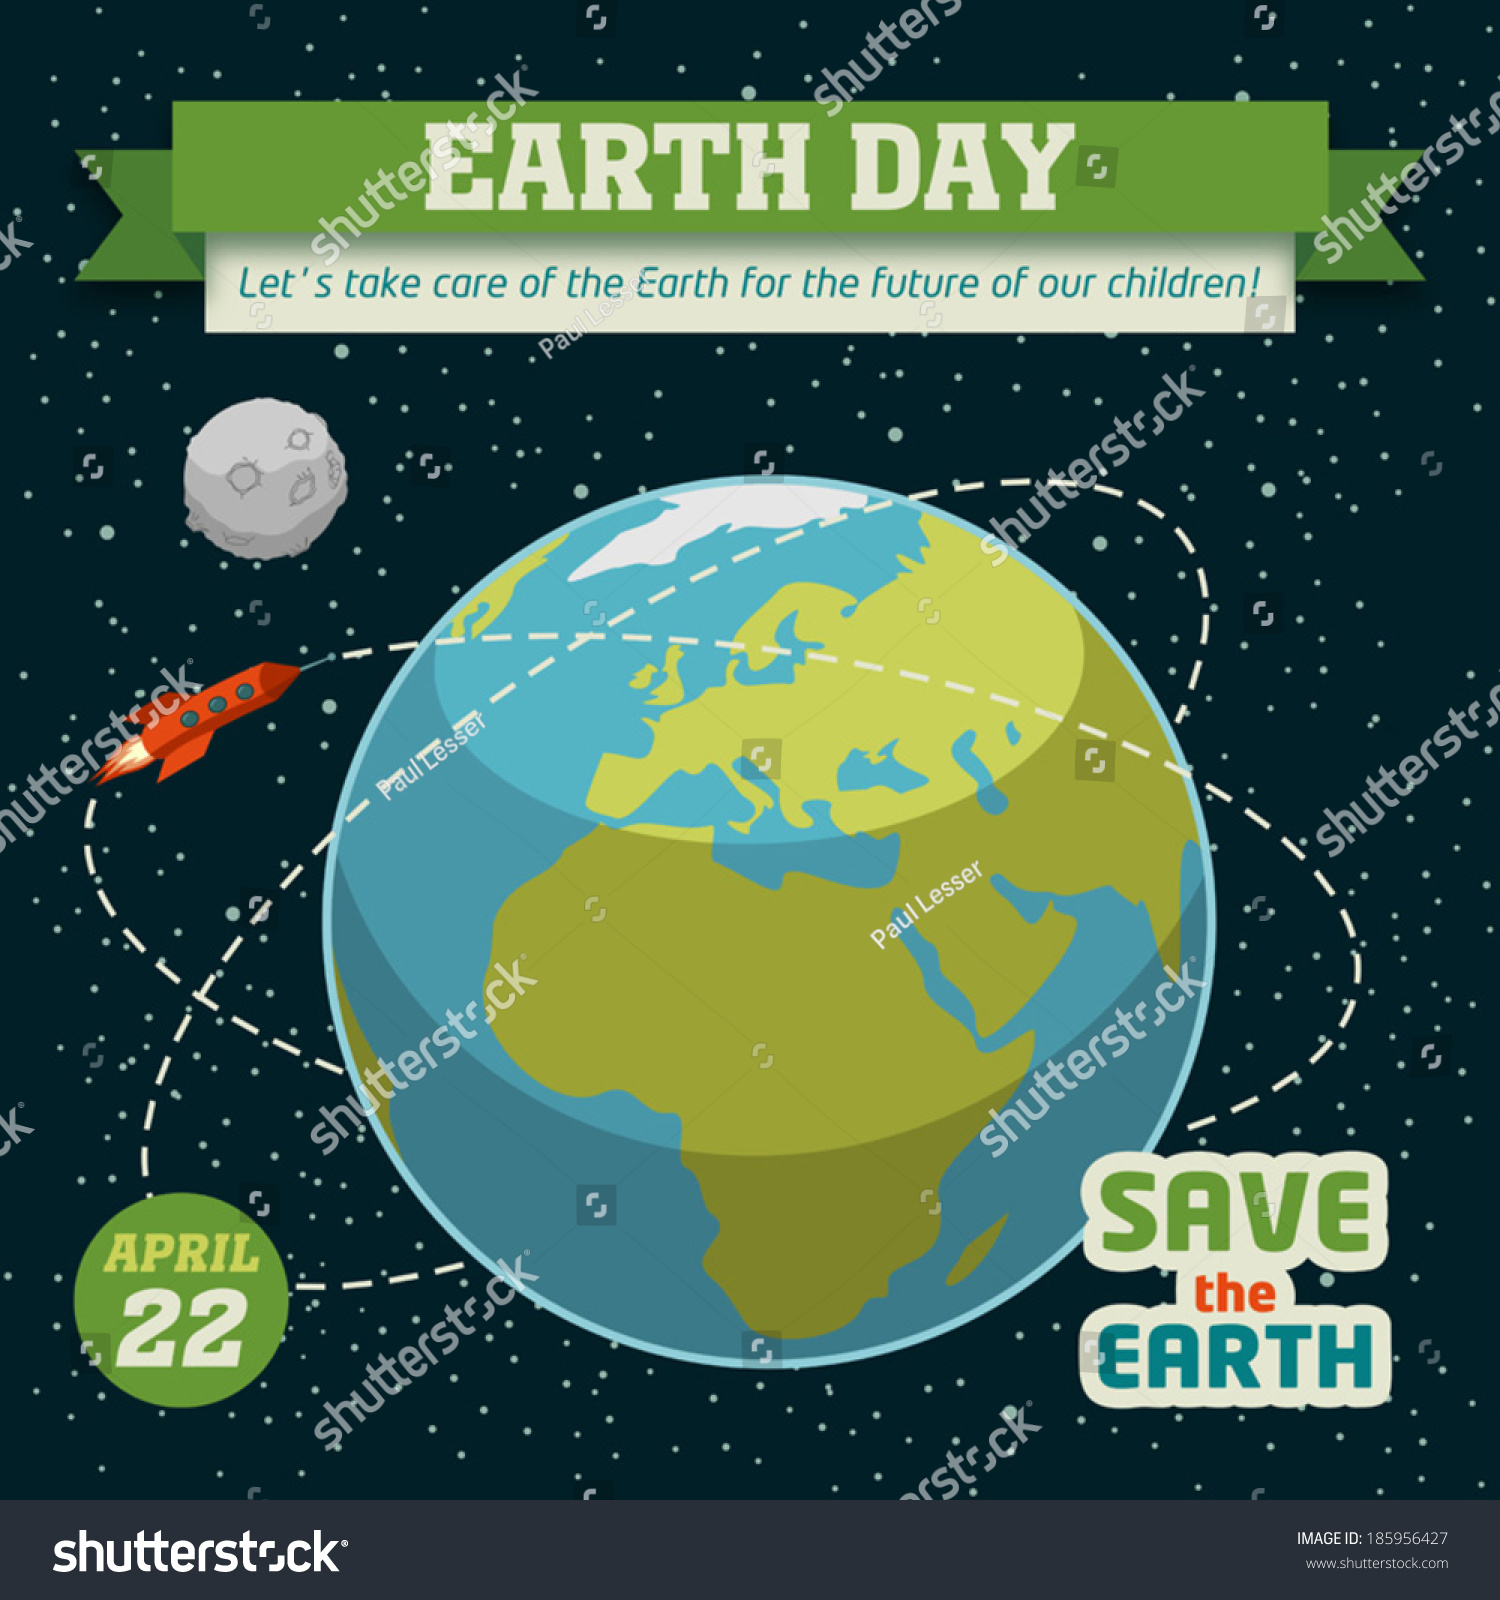 Poster design on save earth - Earth Day Holiday Poster In Flat Design On Space Background